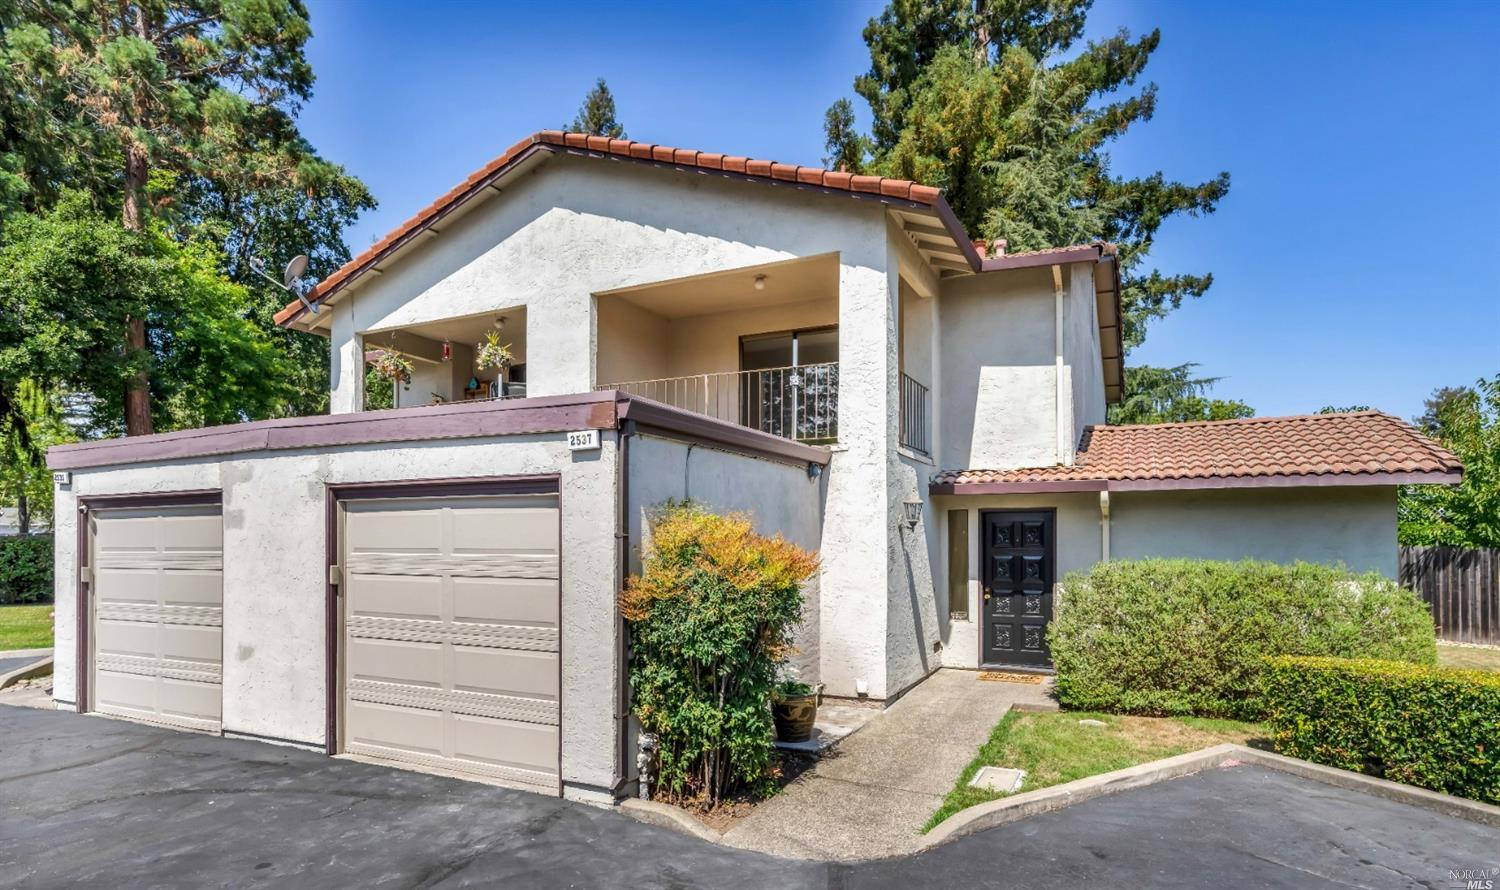 Located at the end of the cul-de-sac that makes up Solano Park, this 2+ bedroom, 2+ bathroom condomi